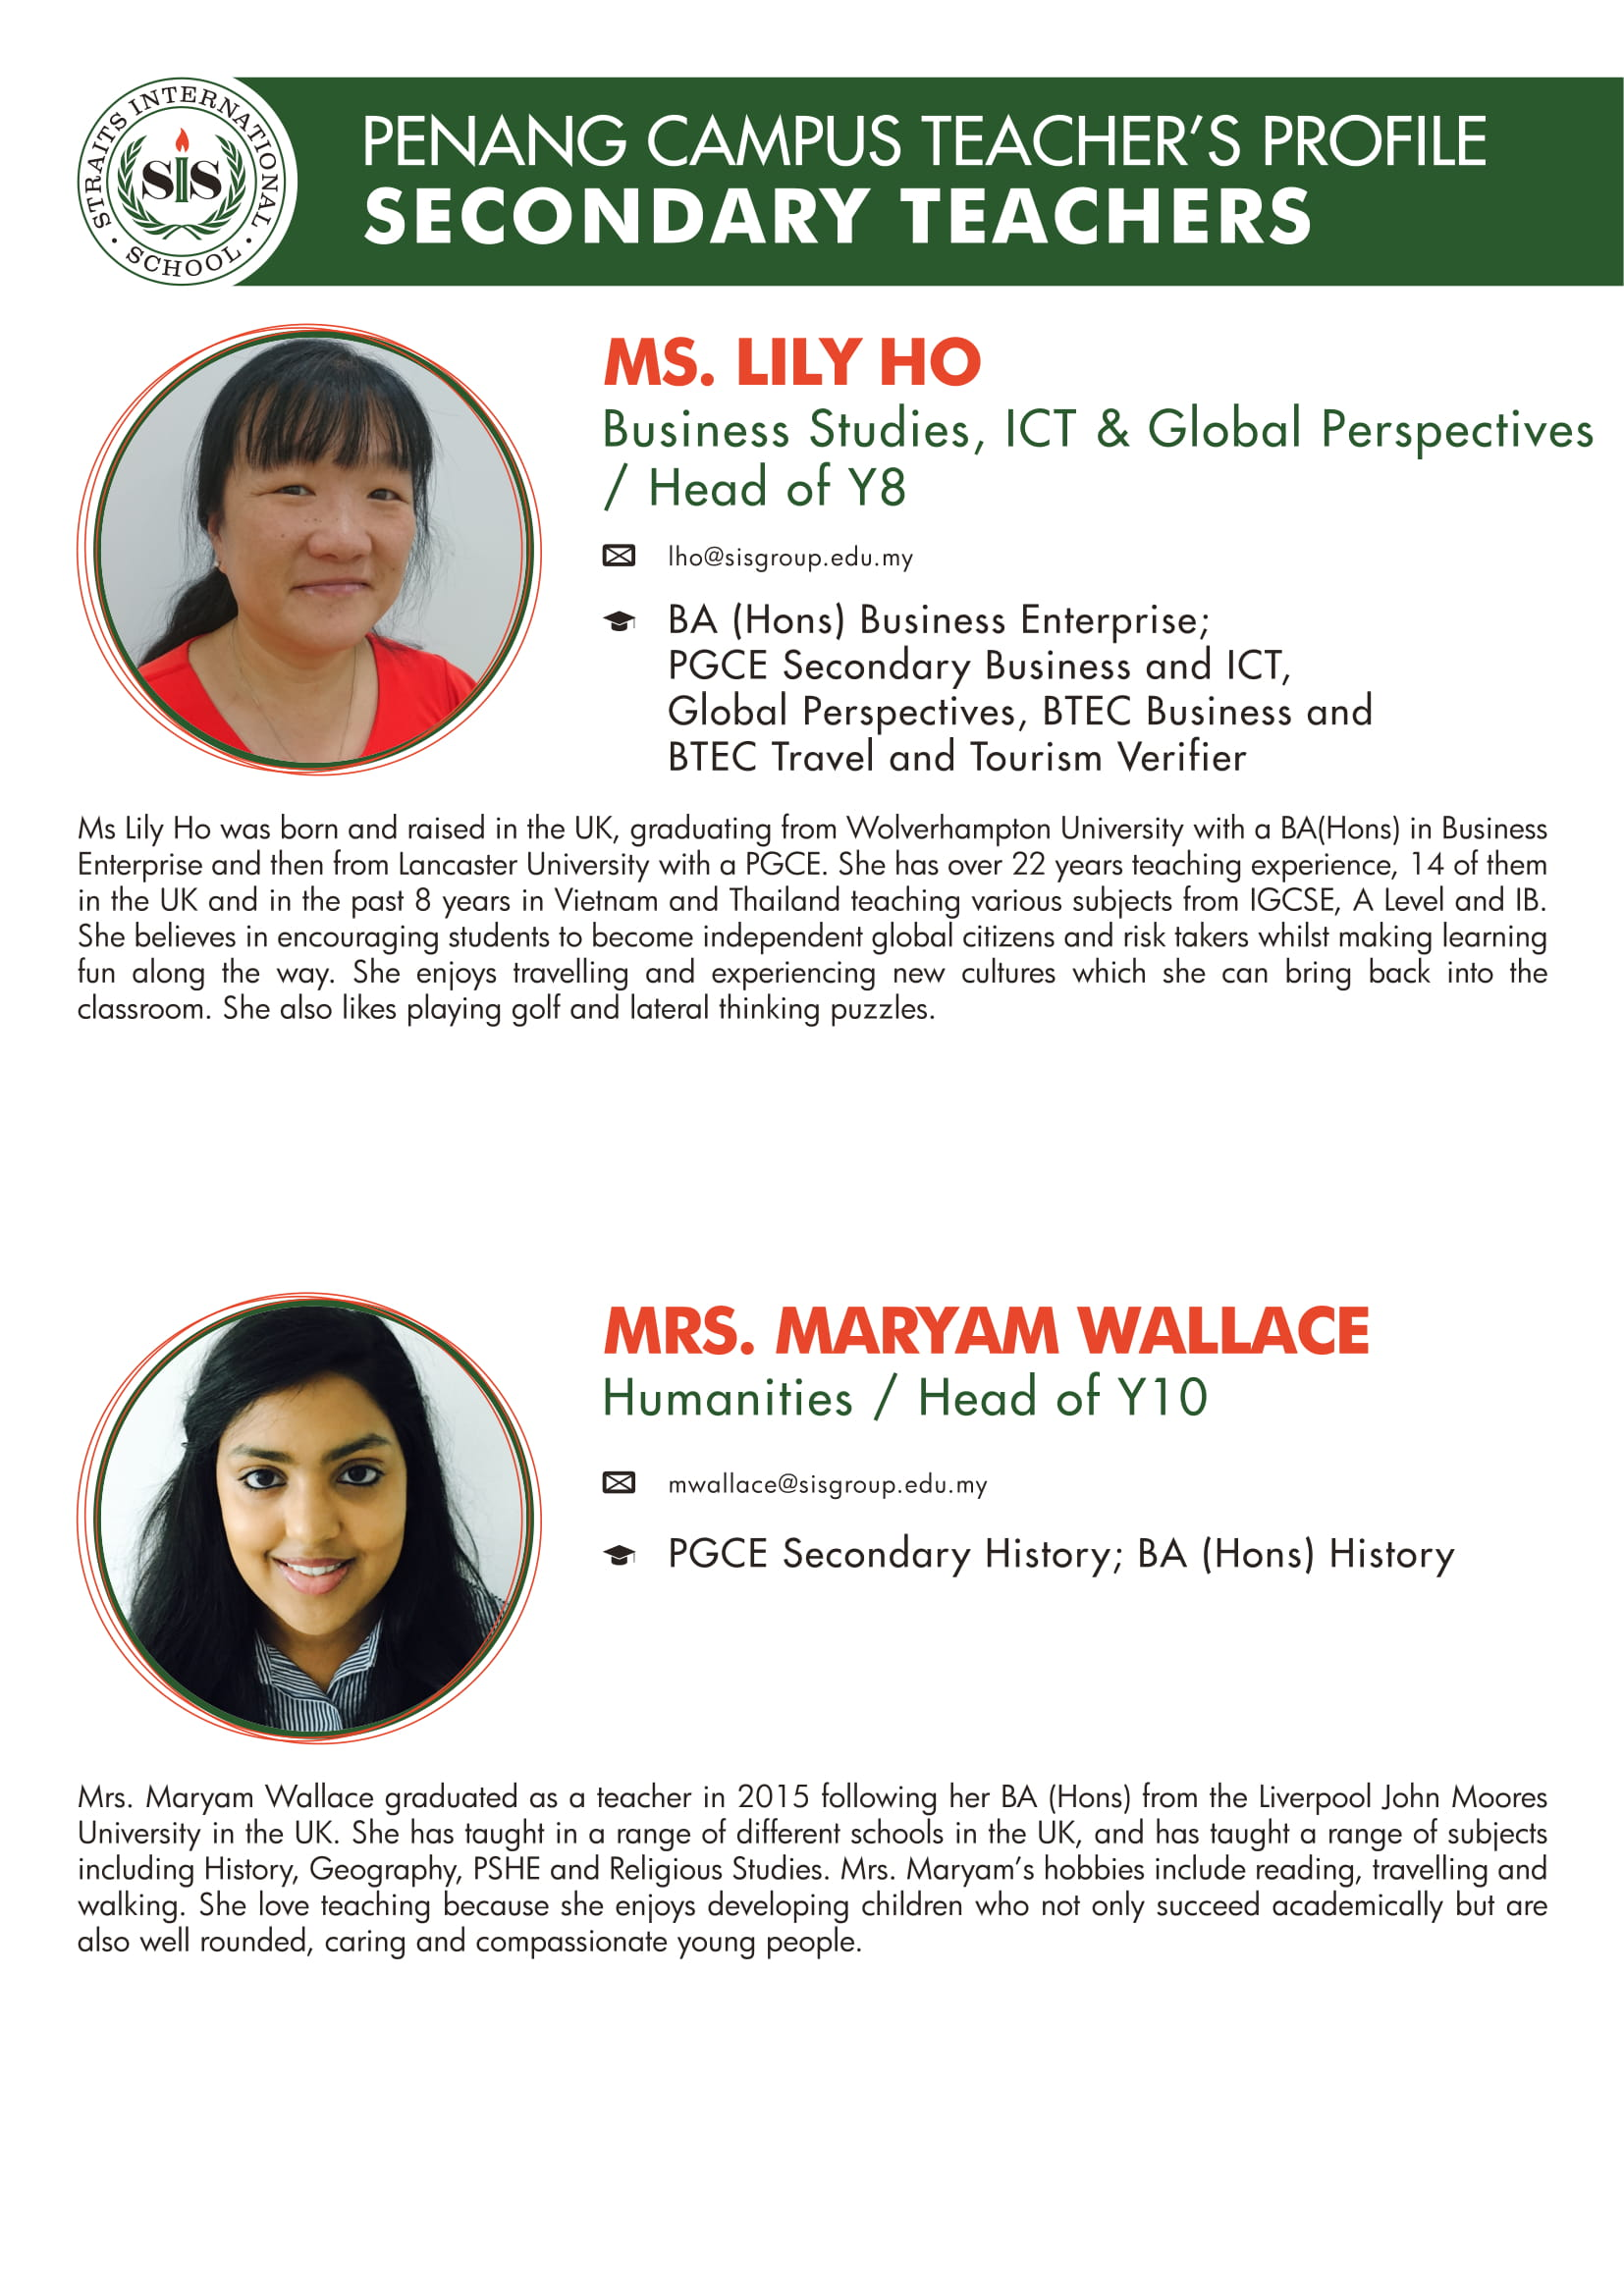 Ms. Lily Ho and Mrs. Maryam Wallace teacher profile